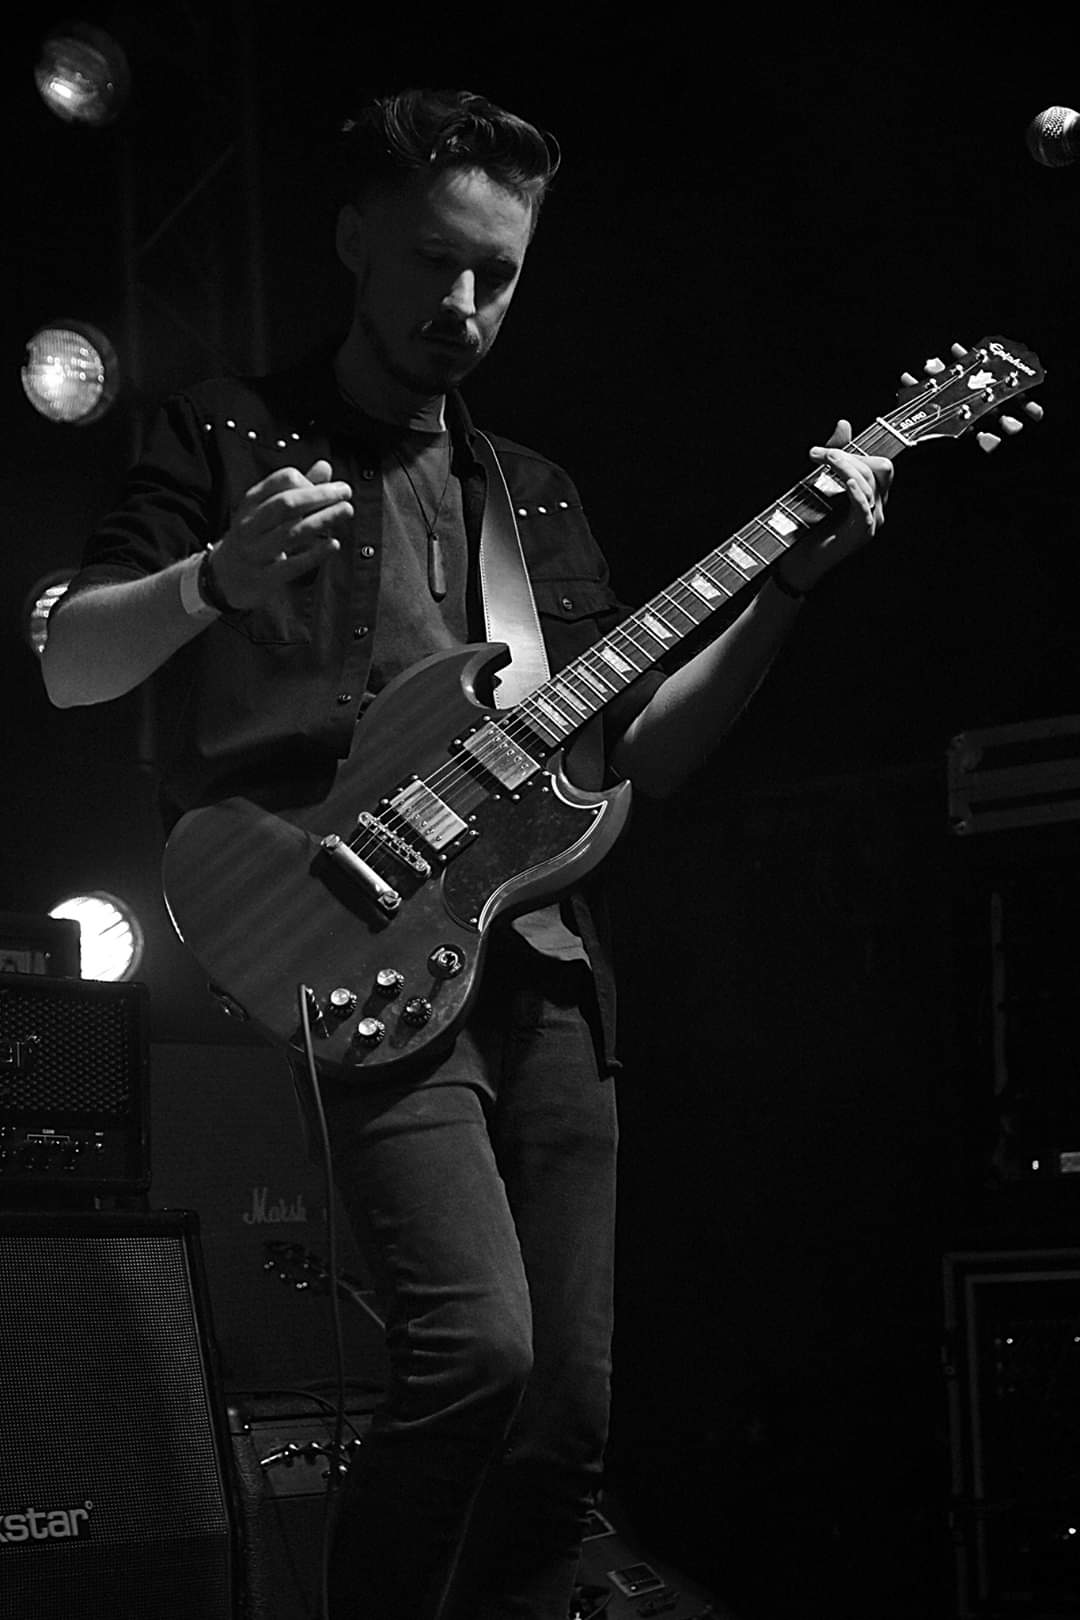 Andy playing guitar at Livewire